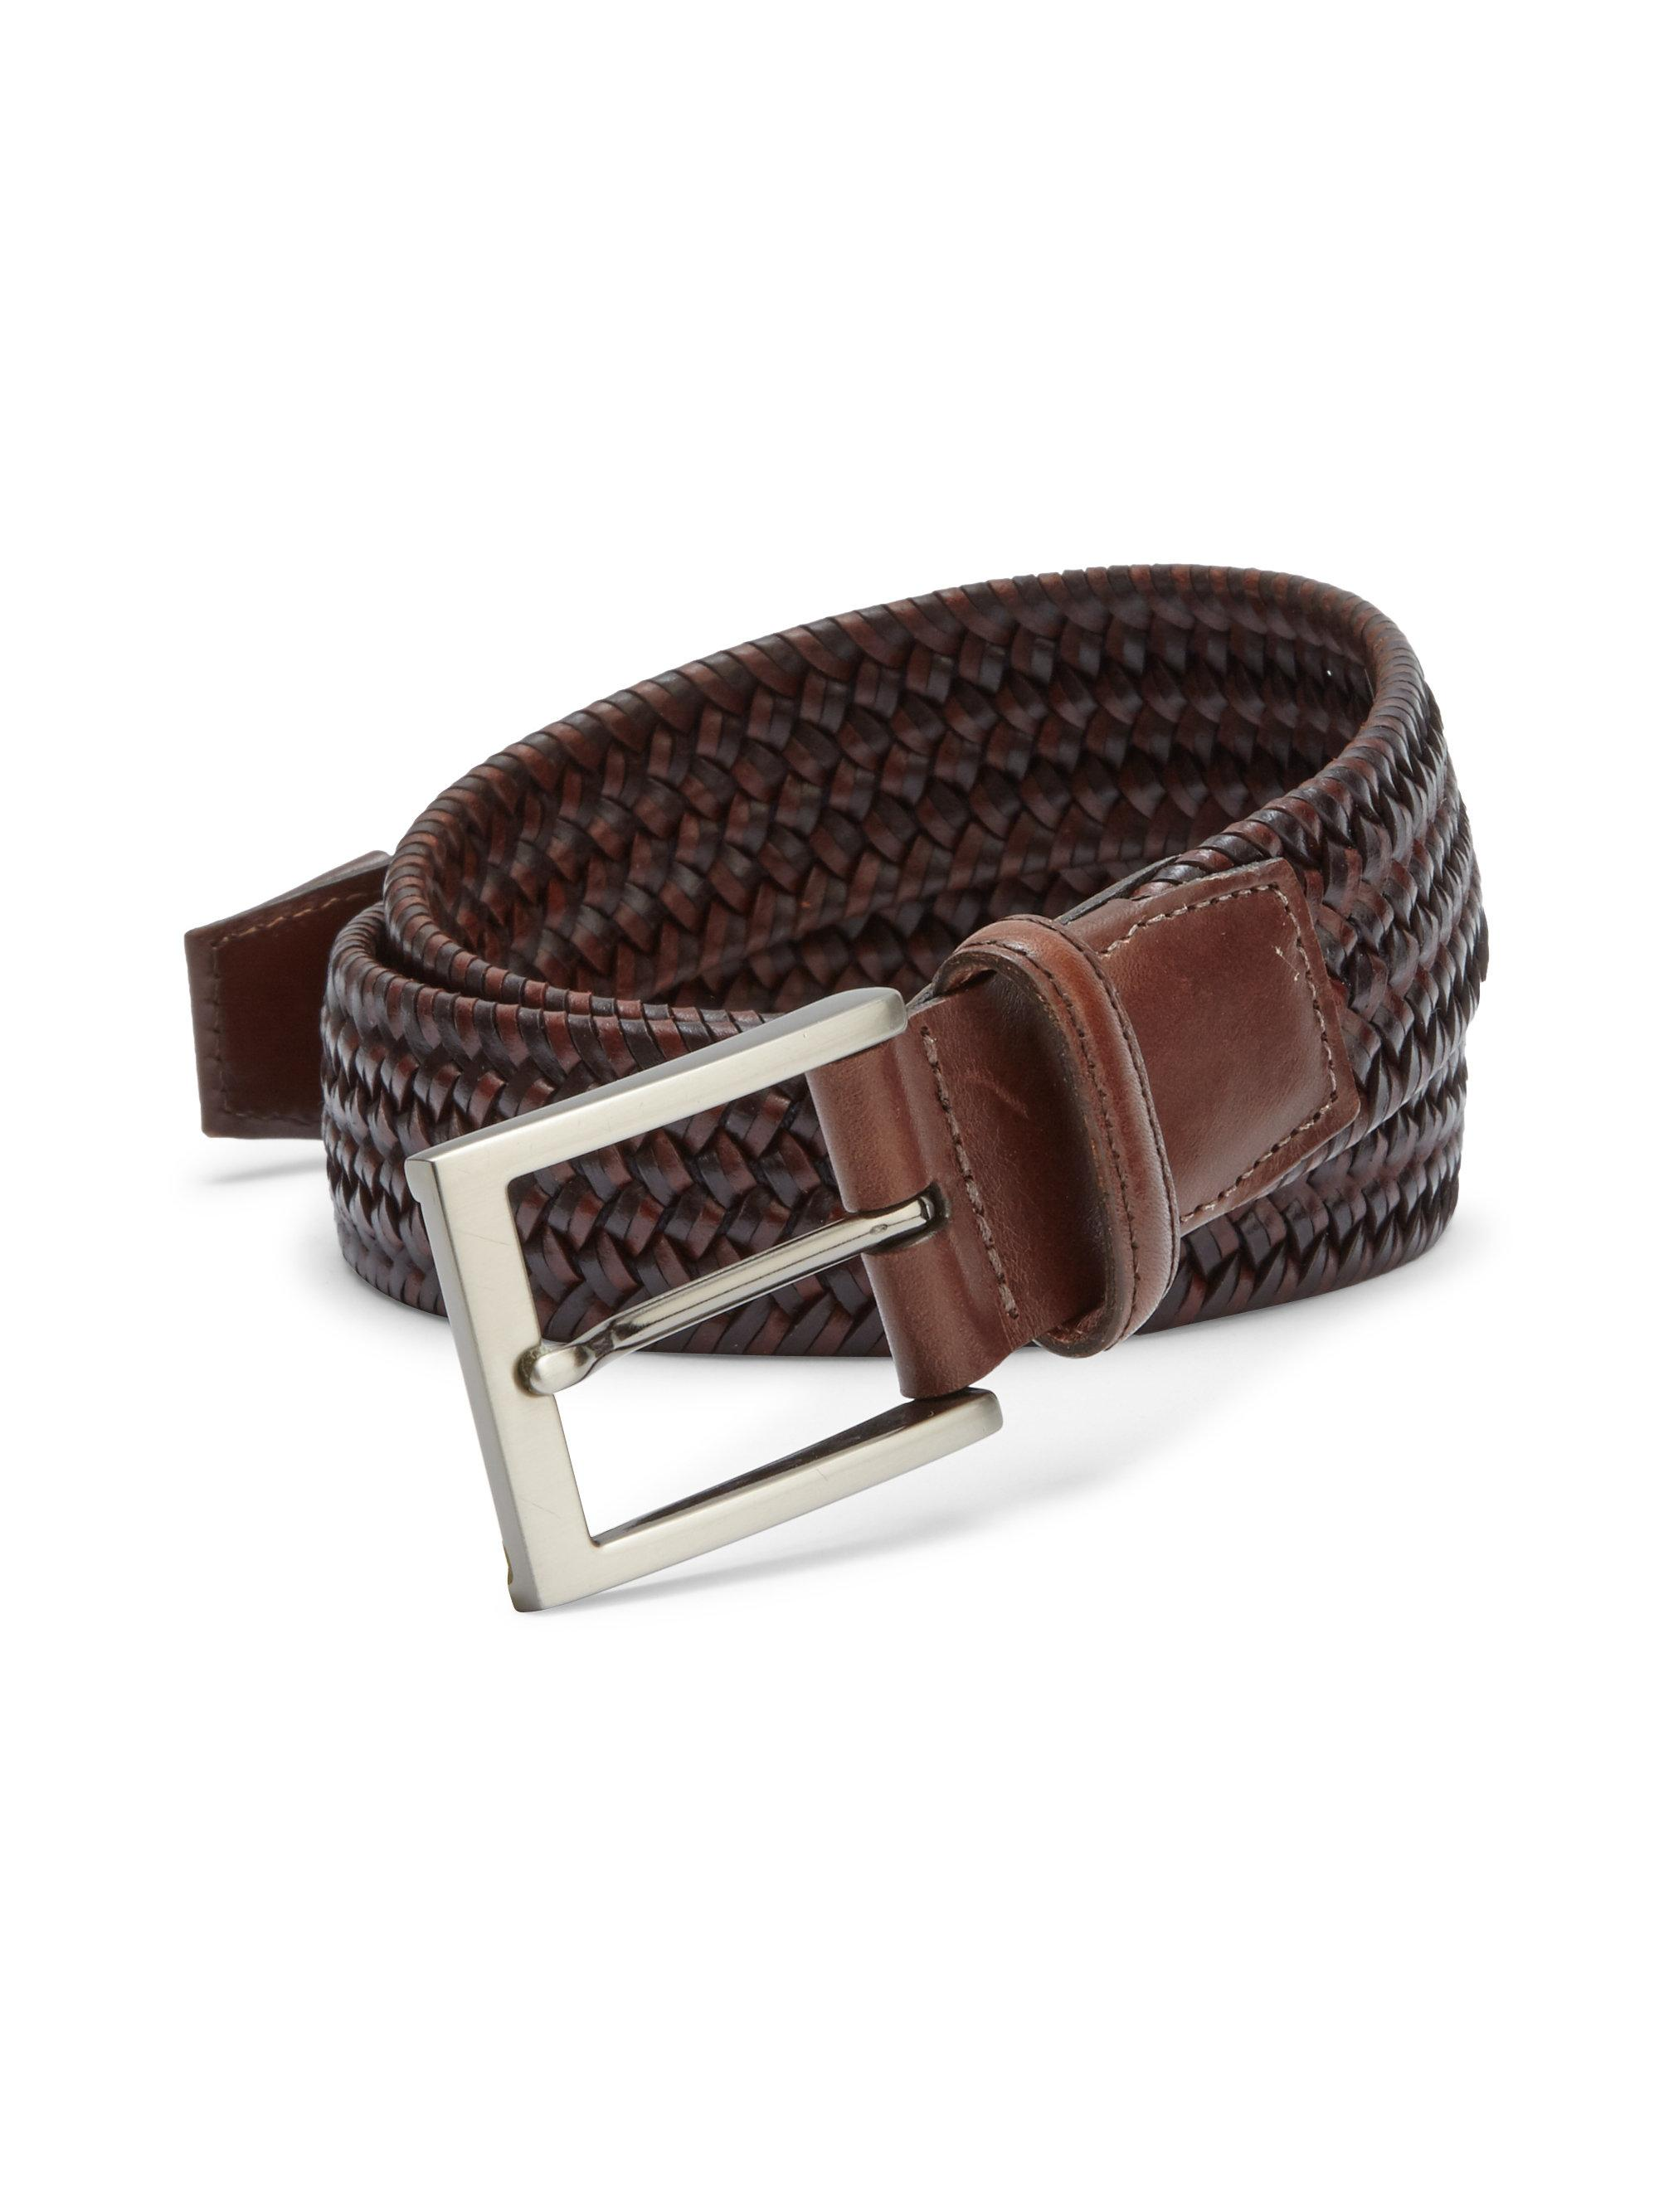 saks fifth avenue braided leather blend belt in brown for